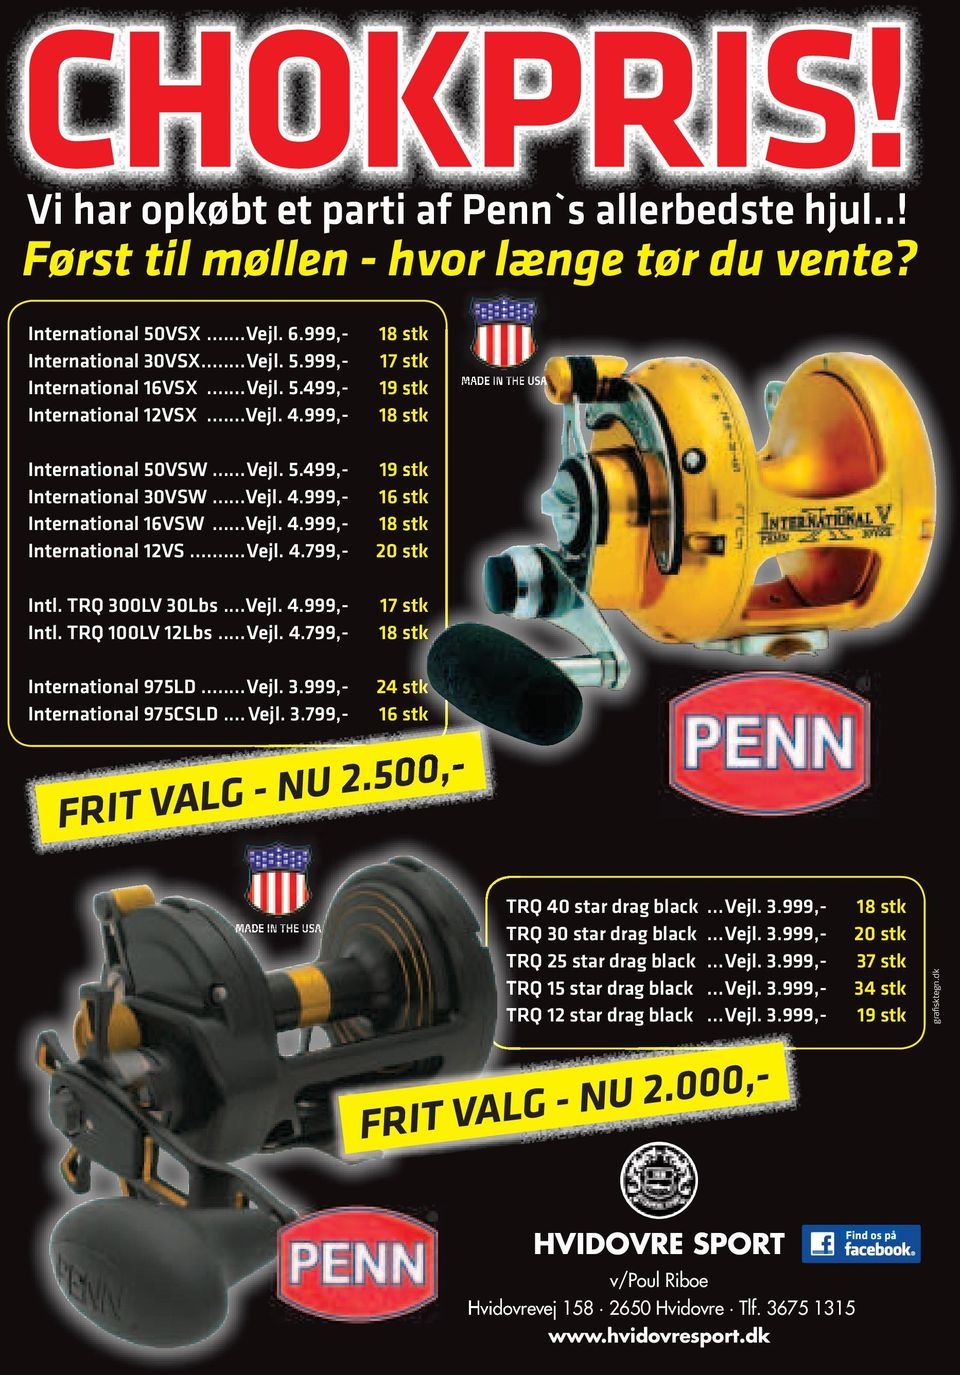 TRQ 300LV 30Lbs...Vejl. 4.999,- Intl. TRQ 100LV 12Lbs...Vejl. 4.799,- 18 stk 17 stk 19 stk 18 stk 19 stk 16 stk 18 stk 20 stk 17 stk 18 stk MADE IN THE USA International 975LD...Vejl. 3.999,- 24 stk International 975CSLD.